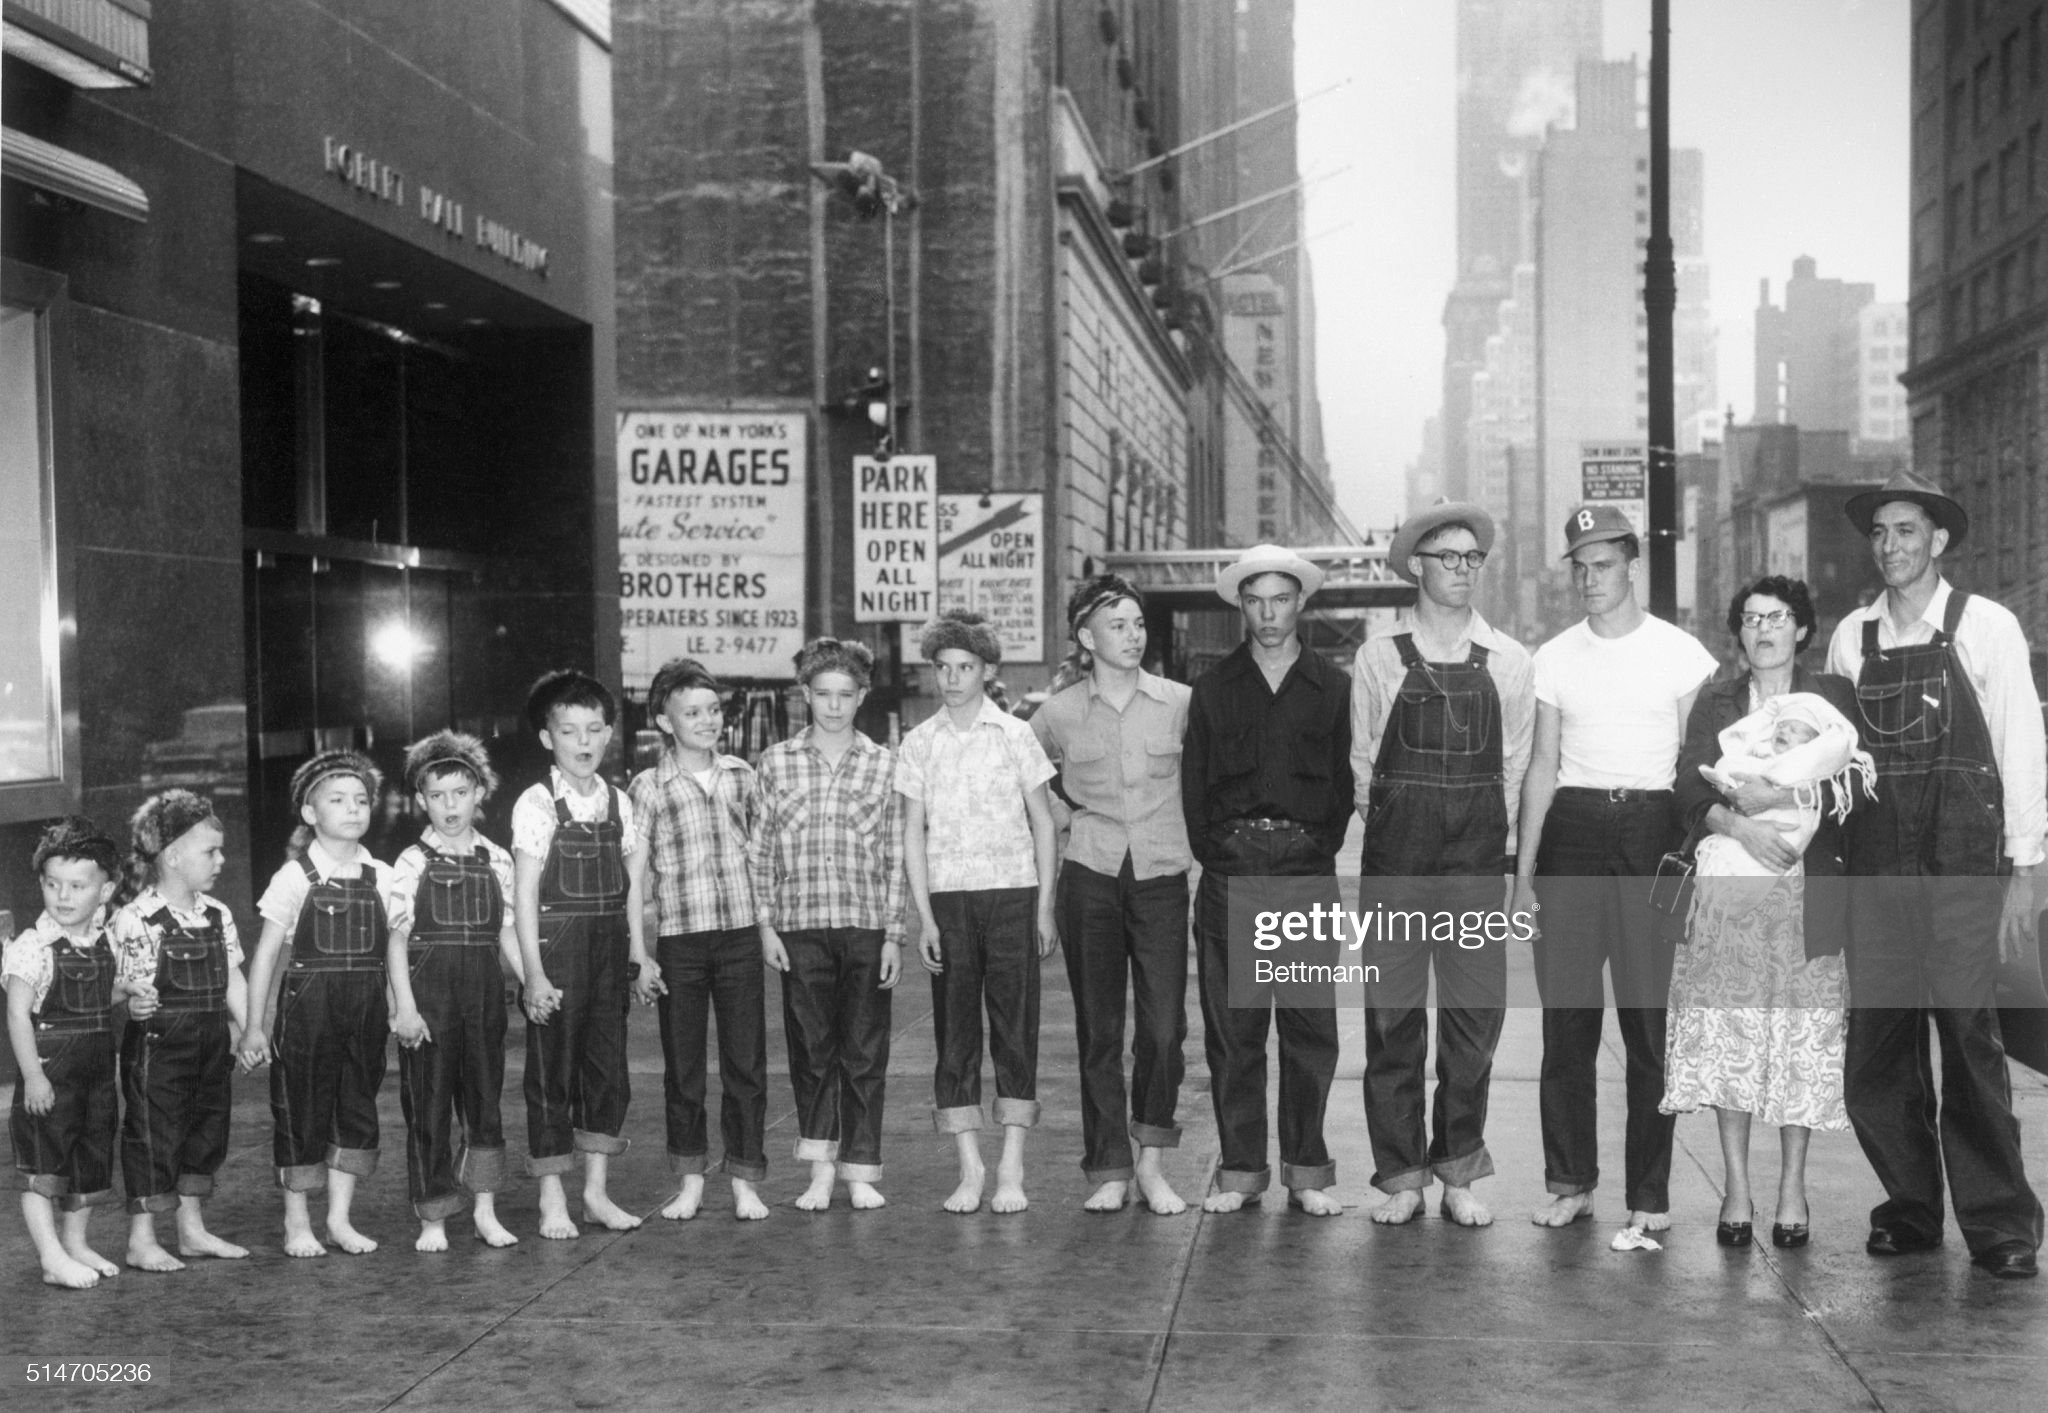 https://media.gettyimages.com/photos/511955nygathered-outside-robert-hall-clothing-store-on-west-34th-st-picture-id514705236?s=2048x2048